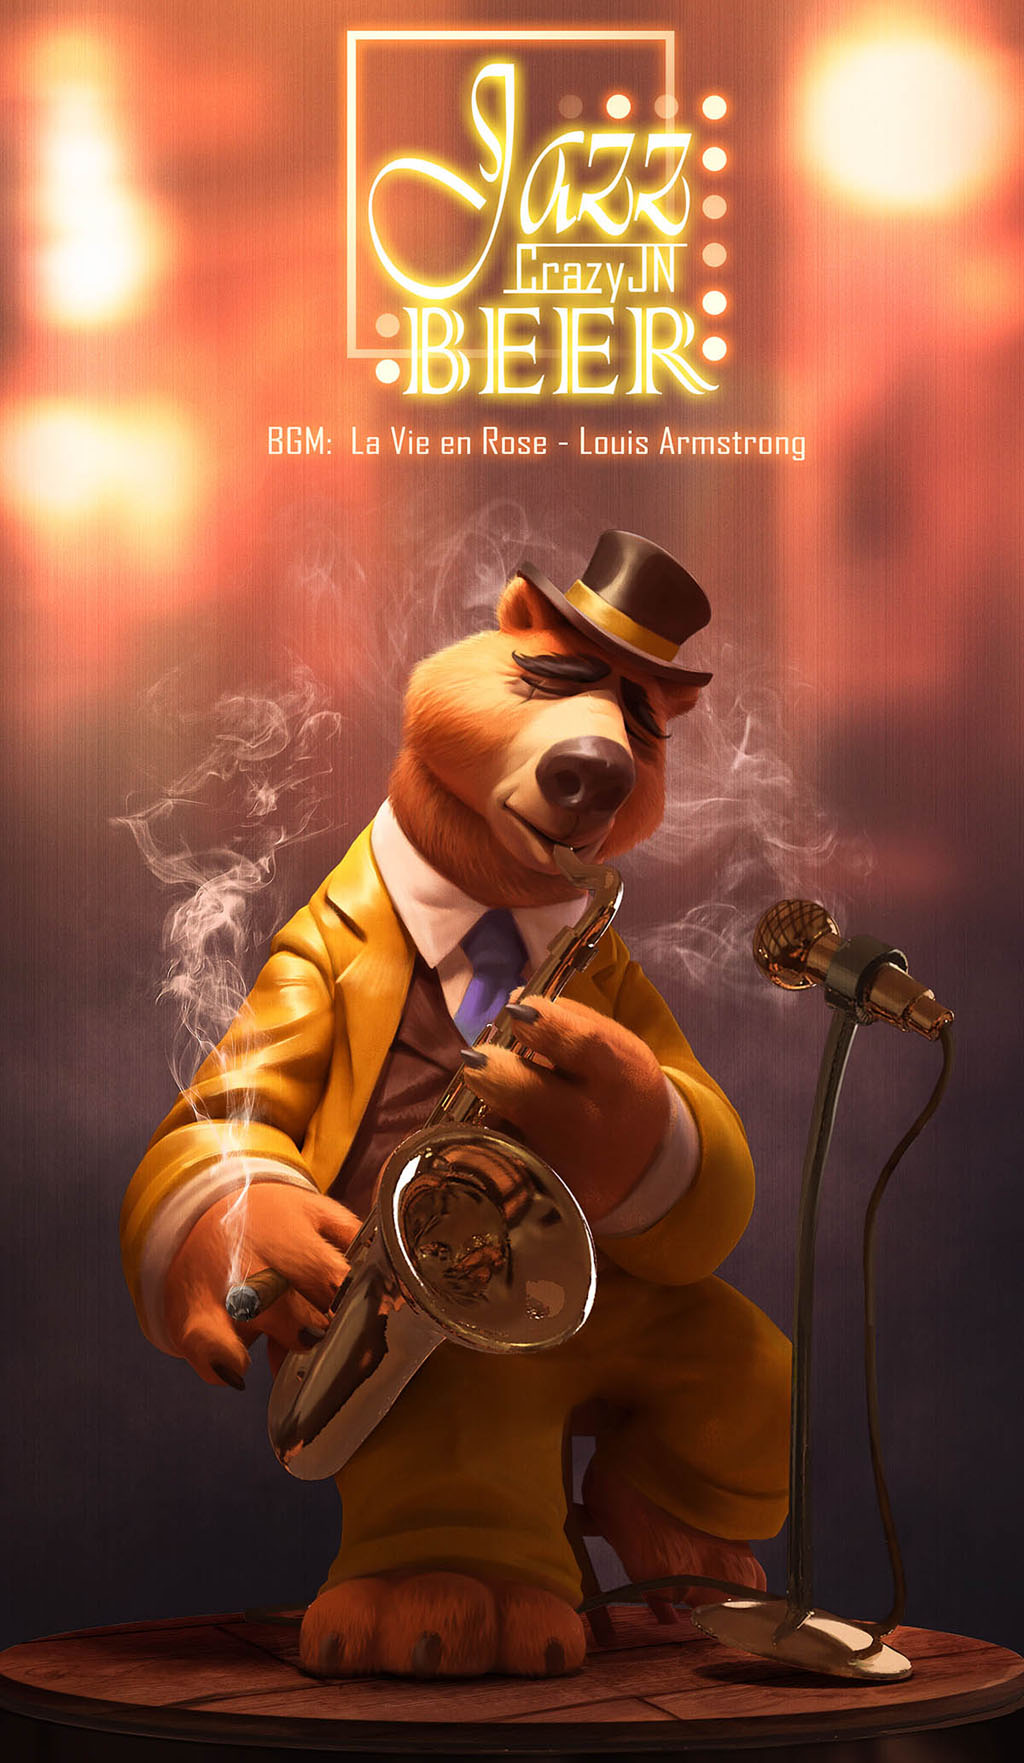 digital art illustration jazz bear